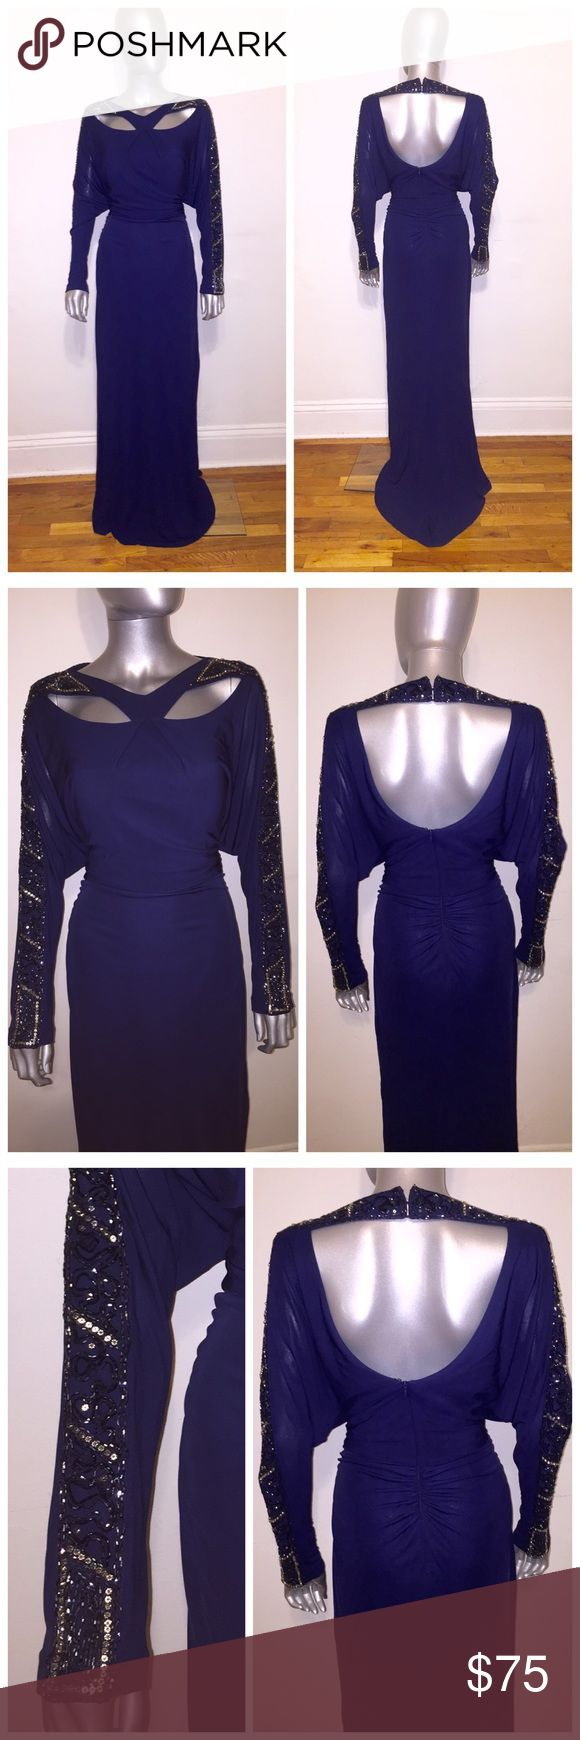 Kay Unger Embellished Gown with Cut Outs Kay Unger Embellished Gown in Navy Blue, embellished with stones and sequins, cut outs in front and back of dress, concealed back zip closure, lined, long sleeve, back lower rouging and this dress is stunning on! New with tags attached. Kay Unger Dresses Long Sleeve